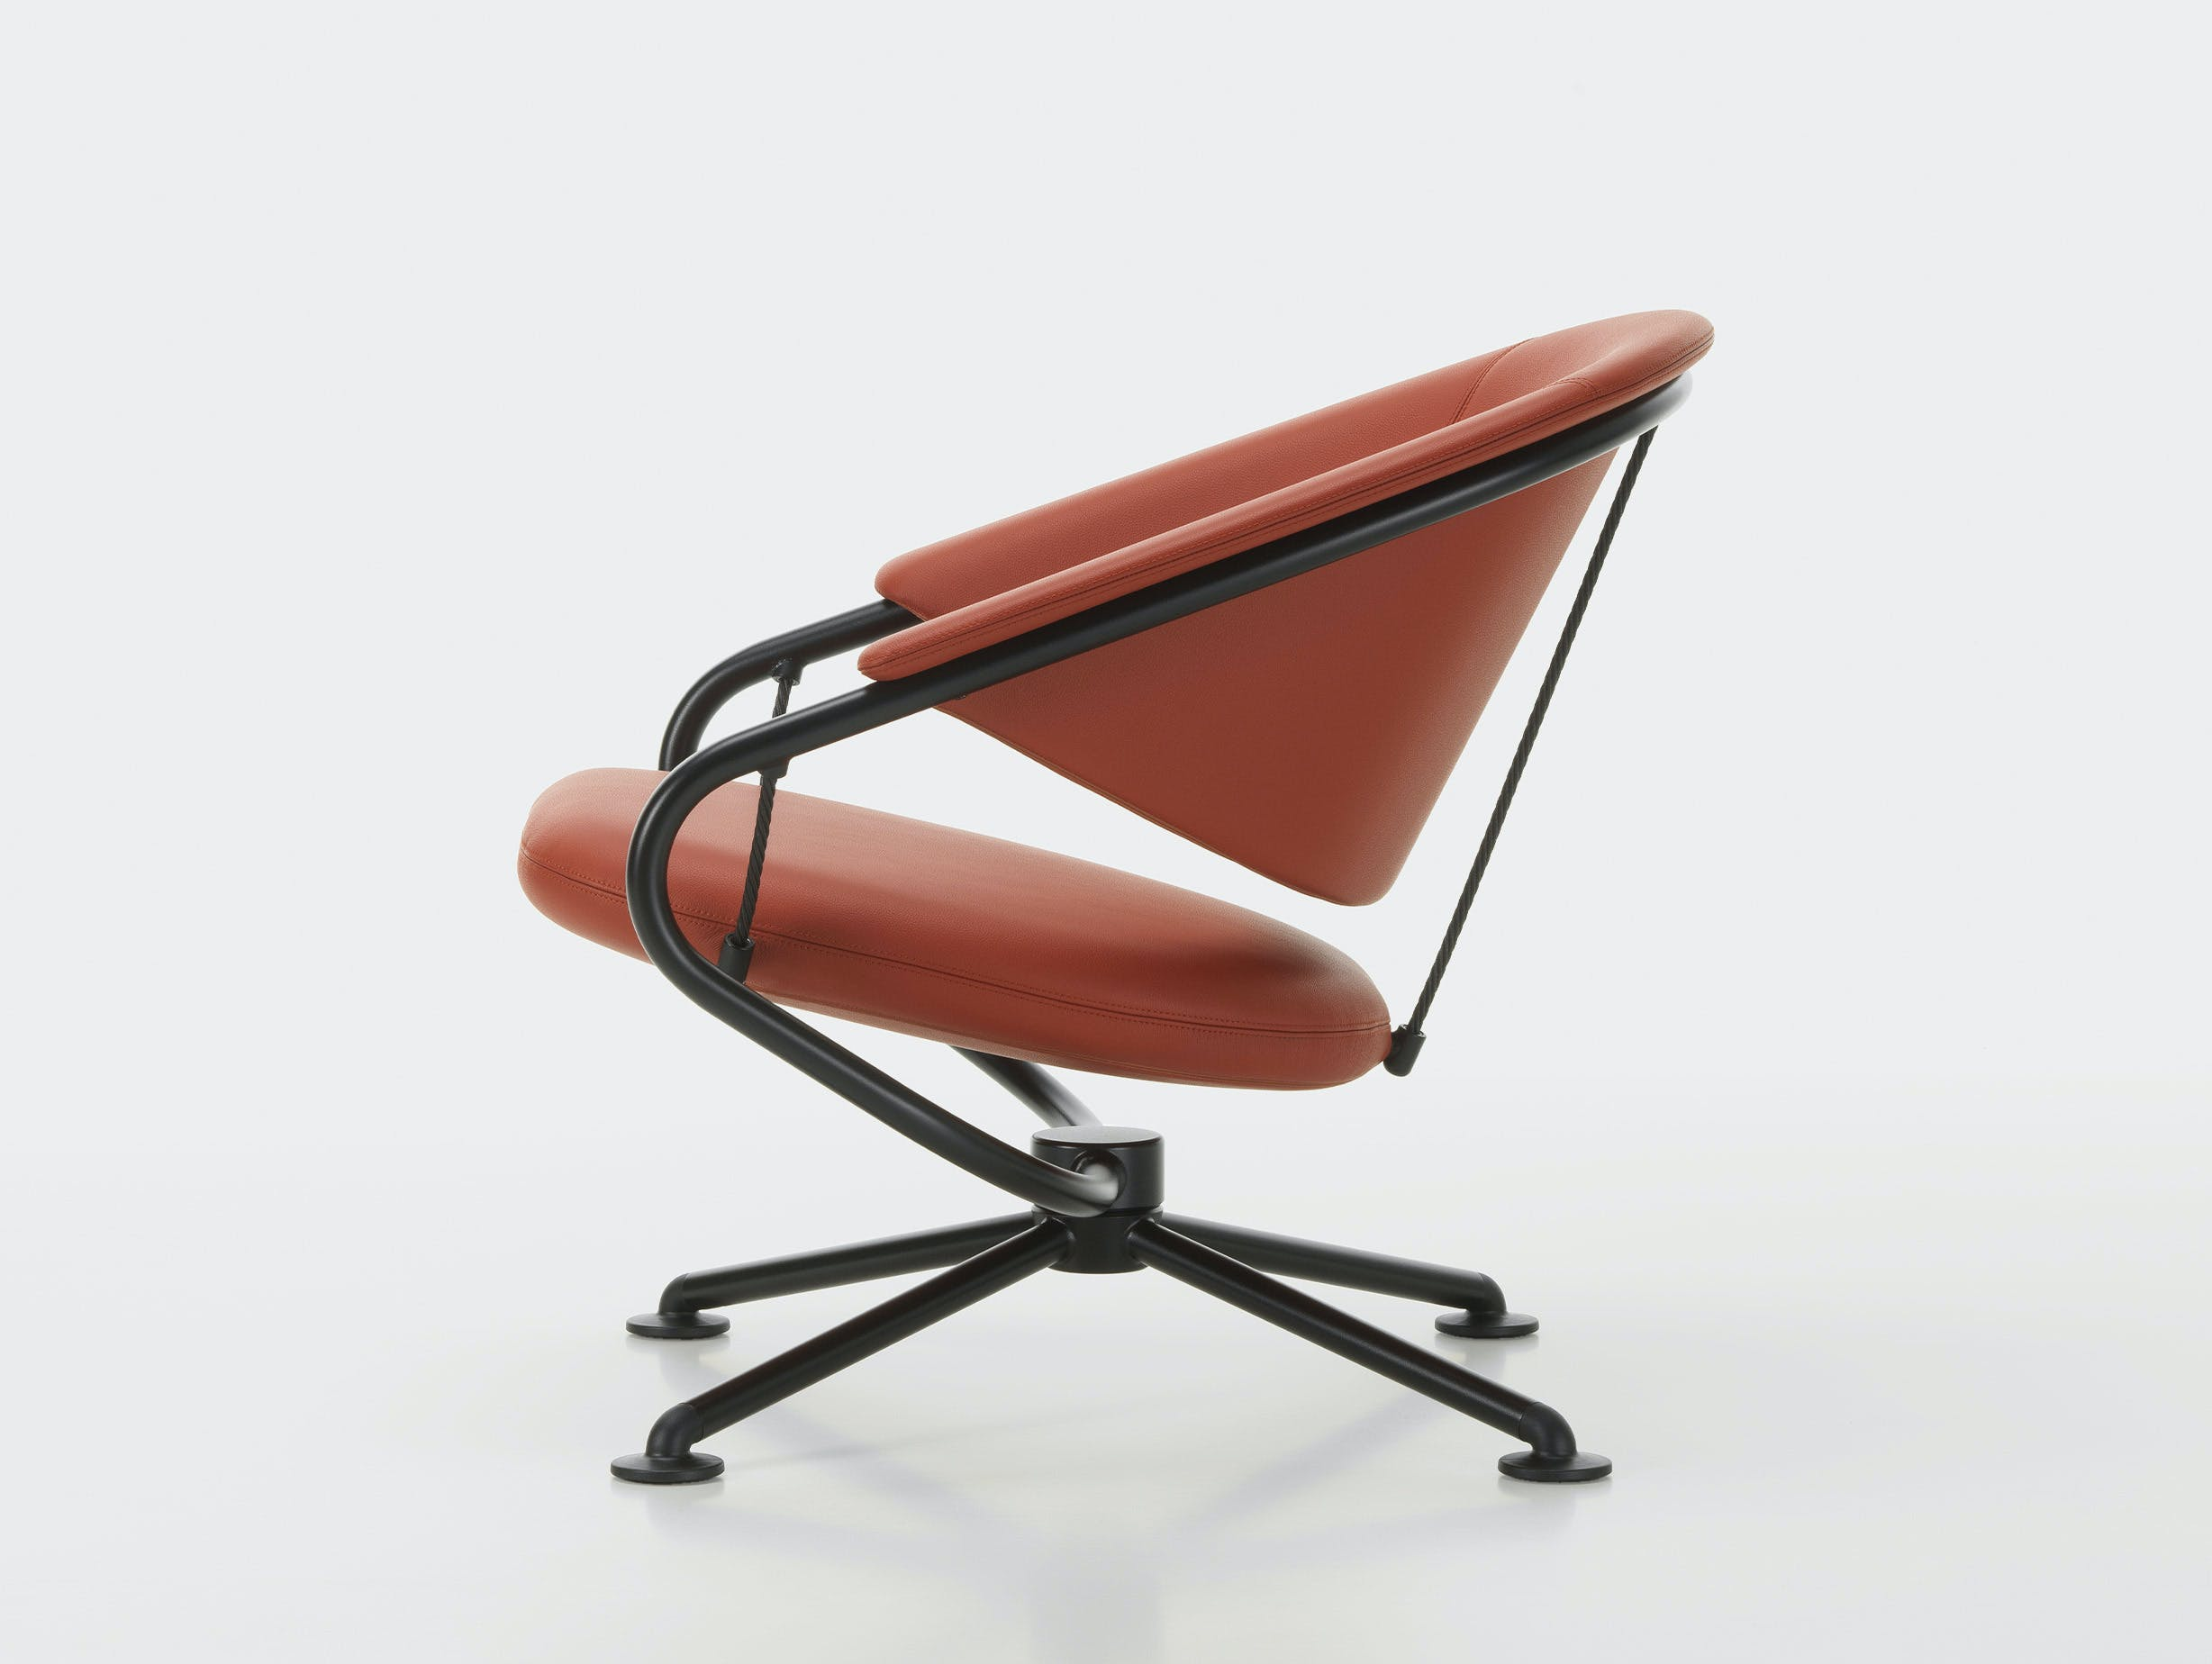 Vitra citizen lowback chair brown leather 3